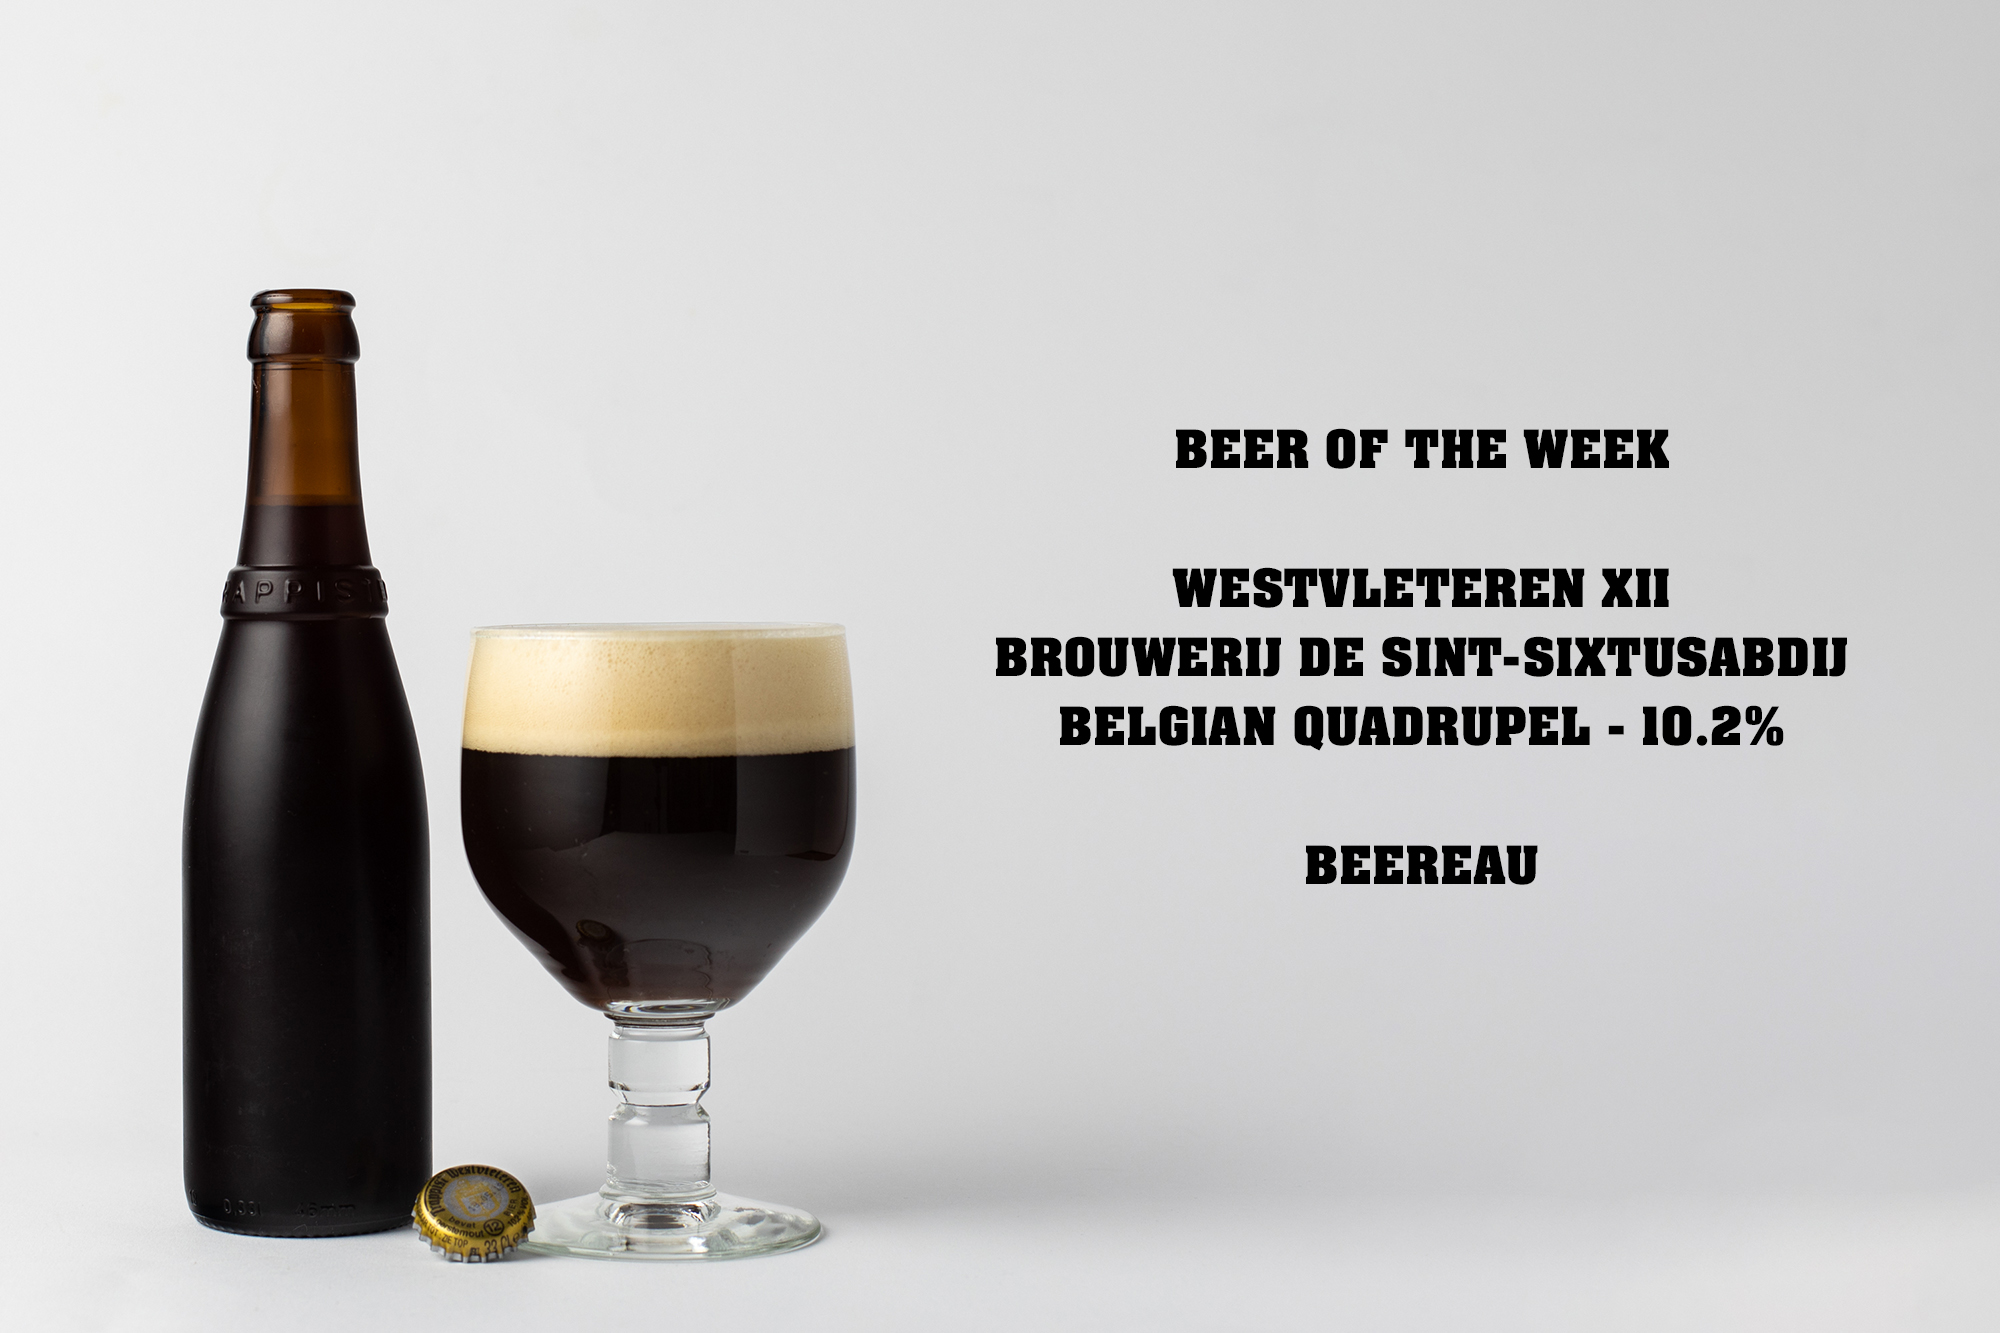 Westvleteren XII brewed by the Trappist monks of the Sint-Sixtus Abdij - a Belgian Quadrupel at 10.2%